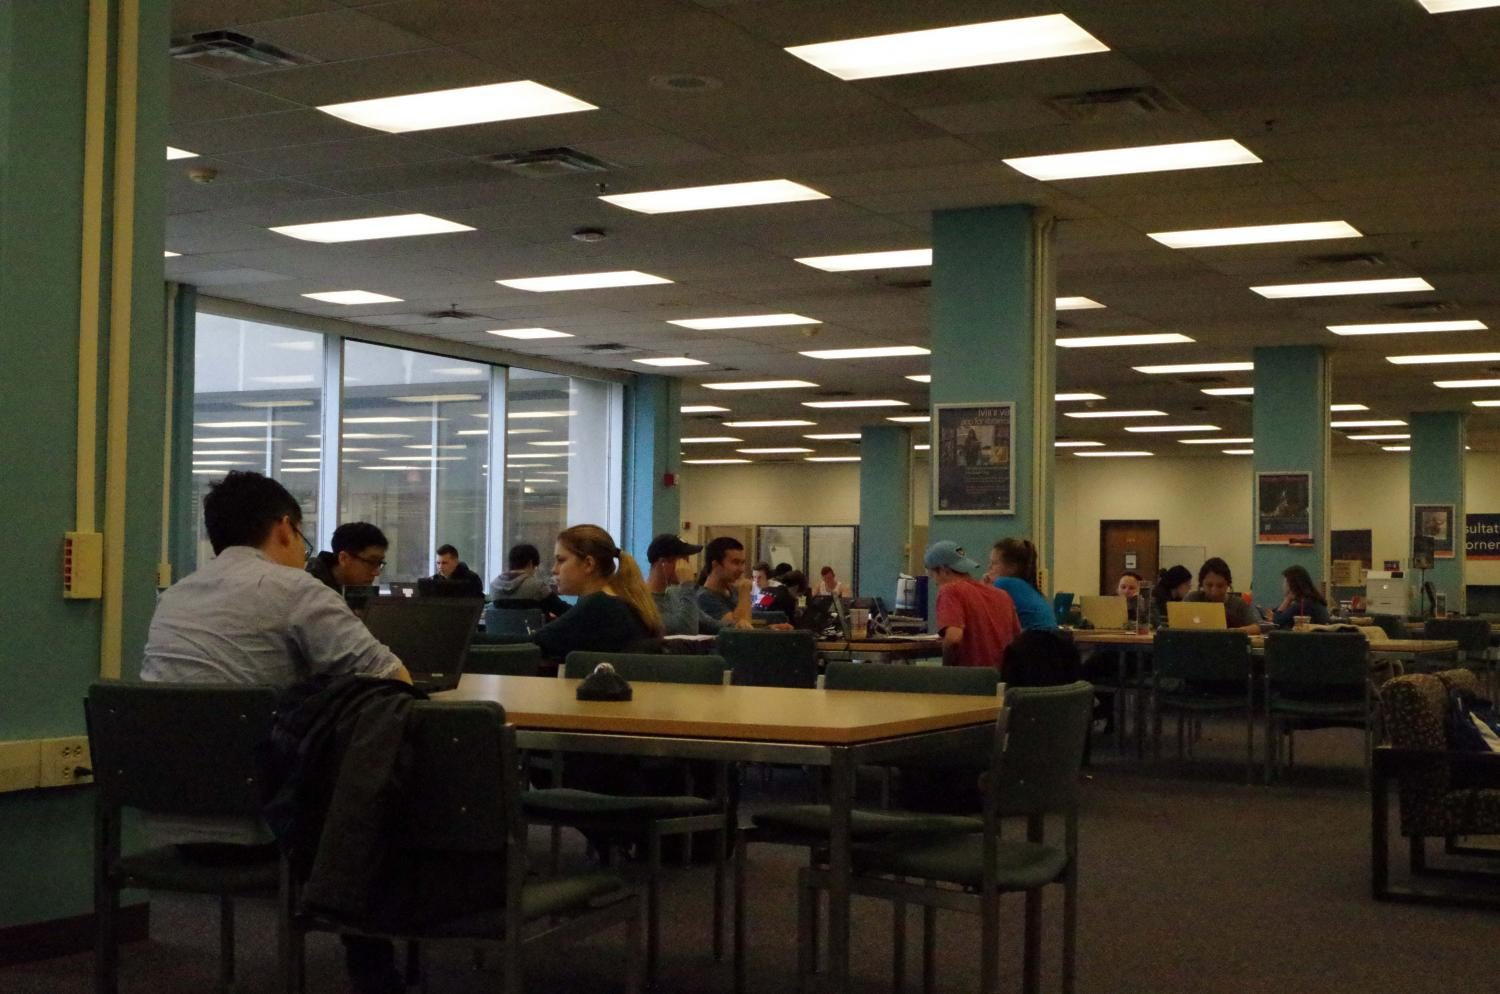 Students study in anticipation for their final exams at the Undergraduate Library.